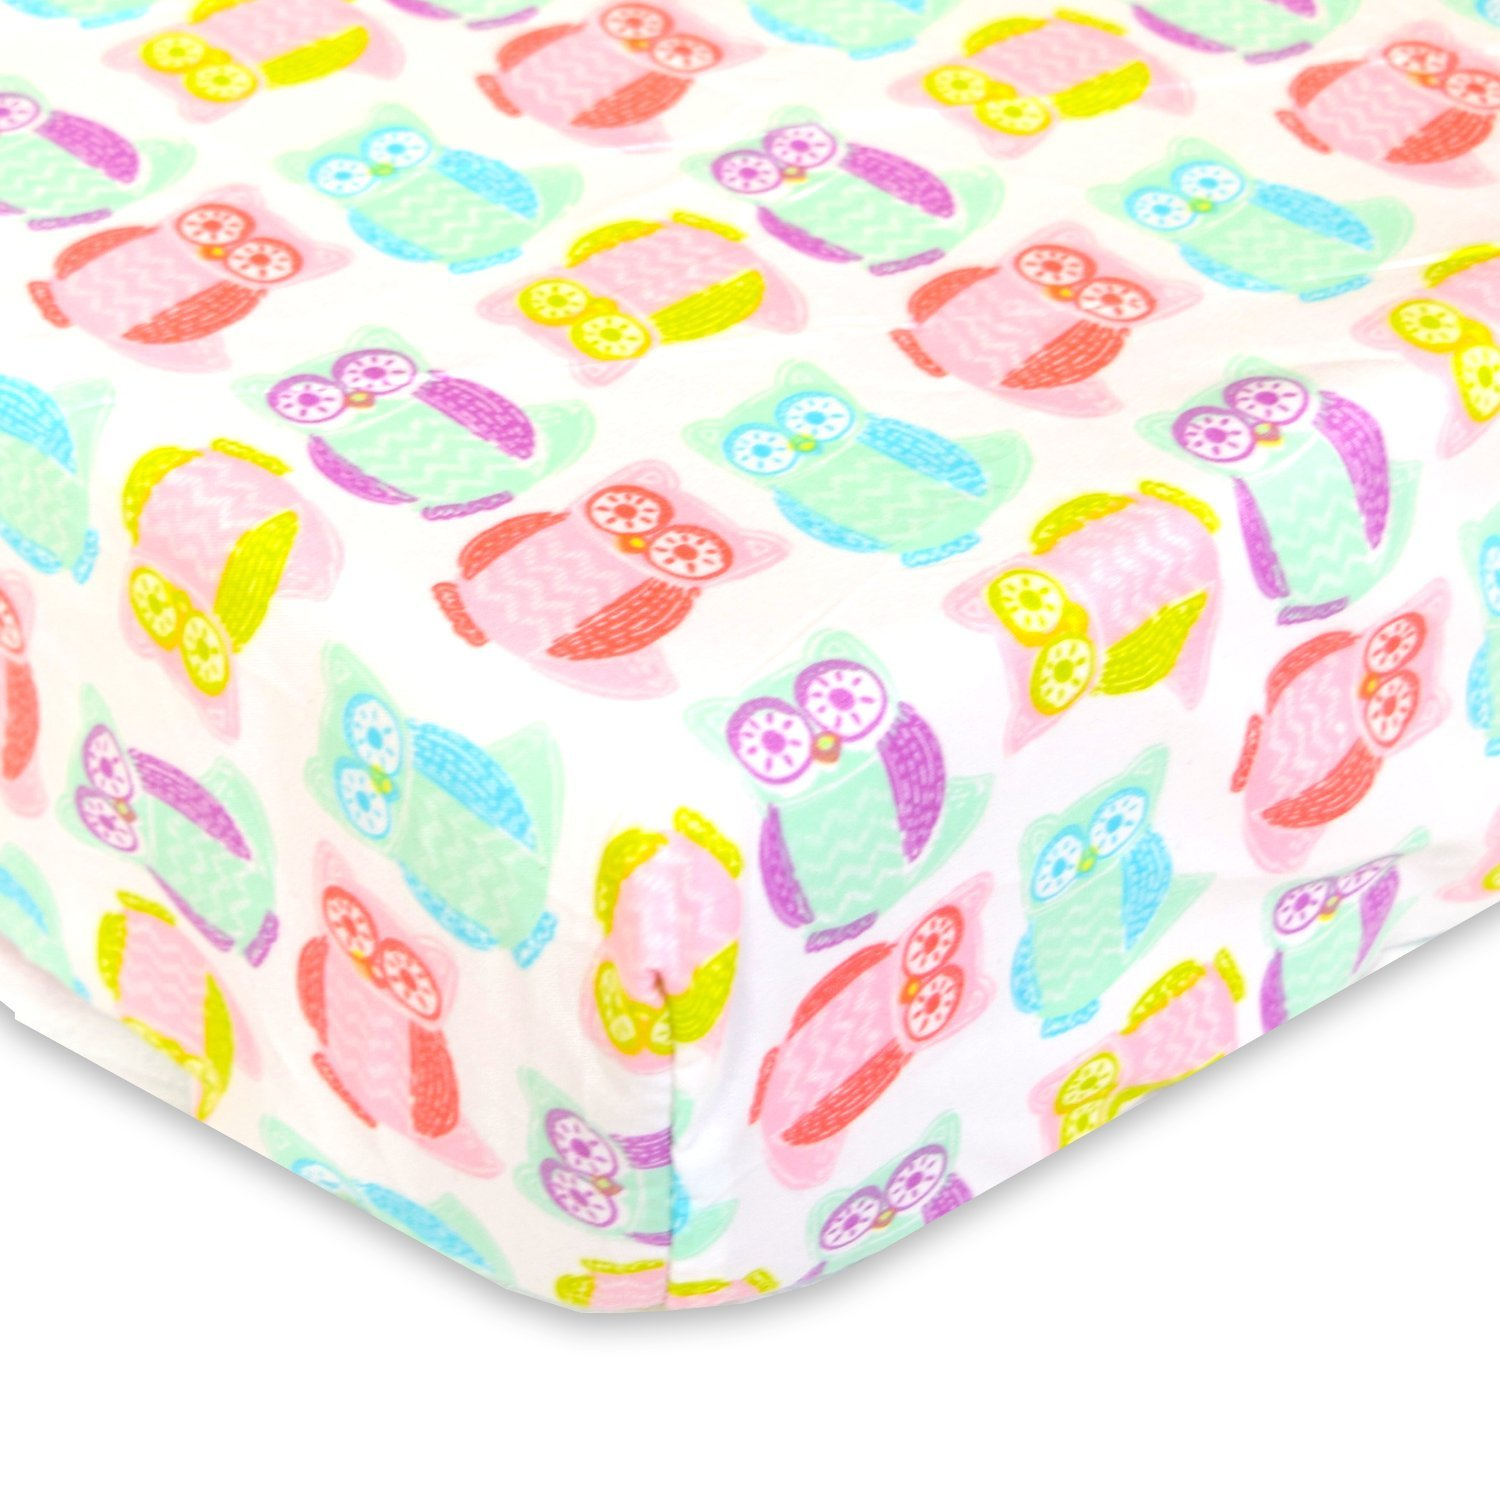 Cuddly Cubs Microfiber Fitted Crib Sheet - Colorful Owls - Soft Nursery Bedding for Boys and Girls - Best Infant Bed Sheets For Baby Shower Gift by Cuddly Cubs   B01DGWVKF2